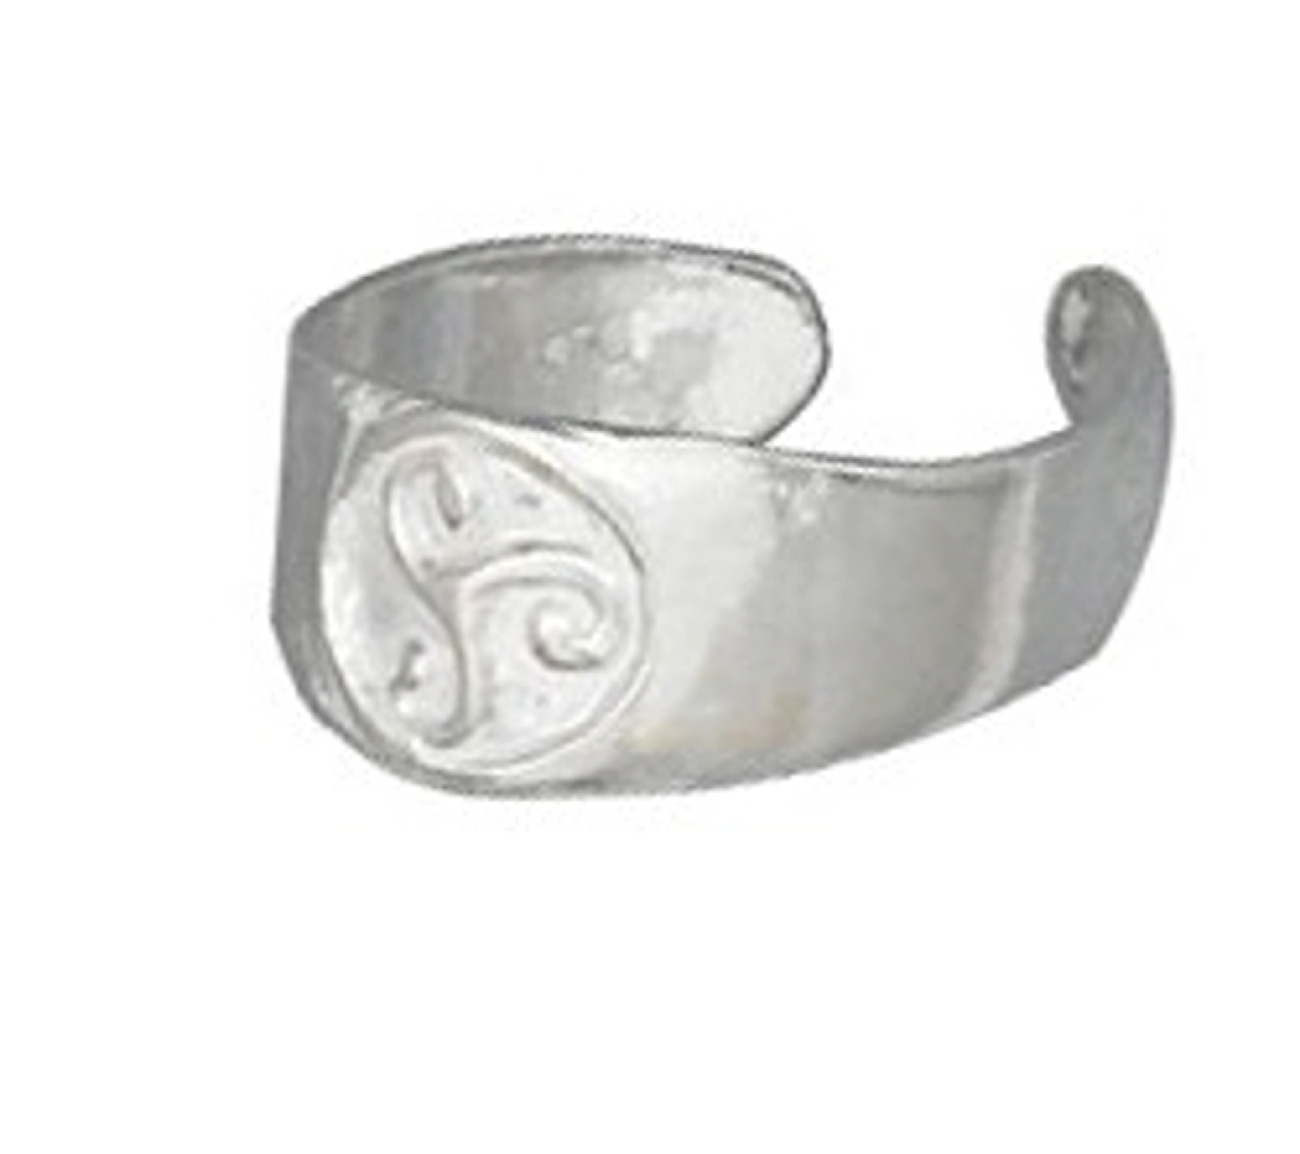 Hopi Indian Symbol Toe Ring